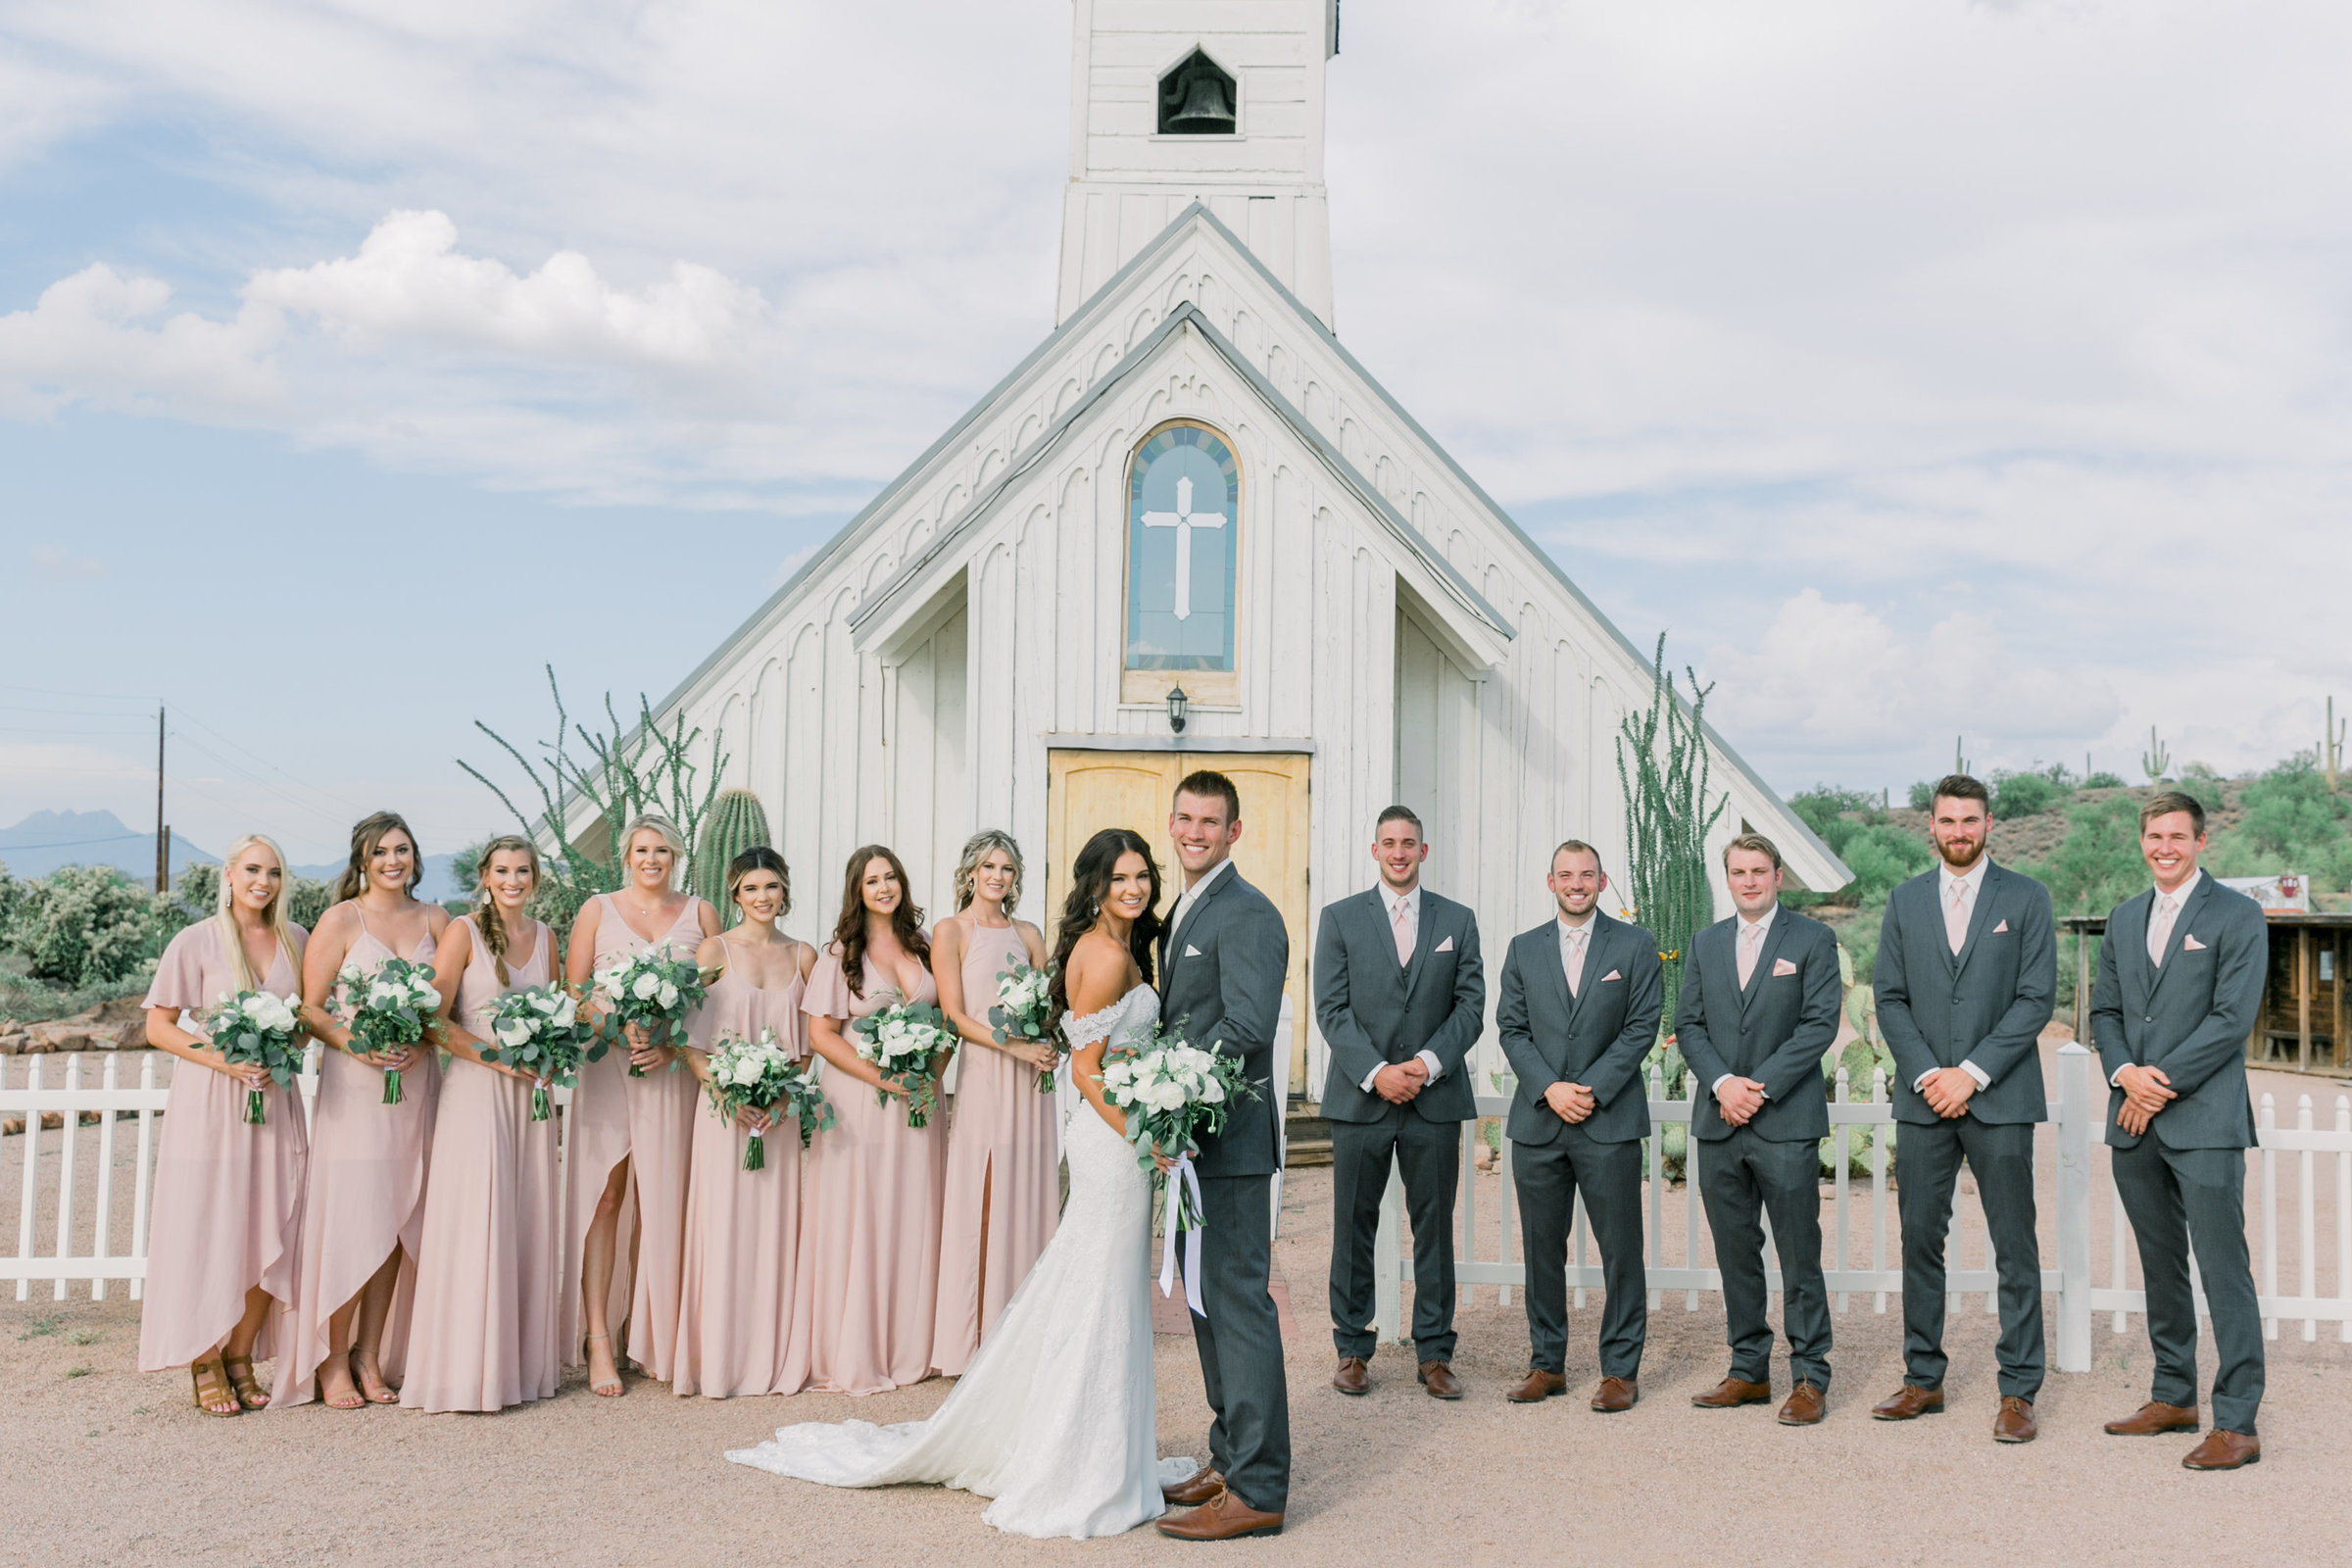 Karlie Colleen Photography - Arizona Wedding - The Paseo Venue - Jackie & Ryan -174